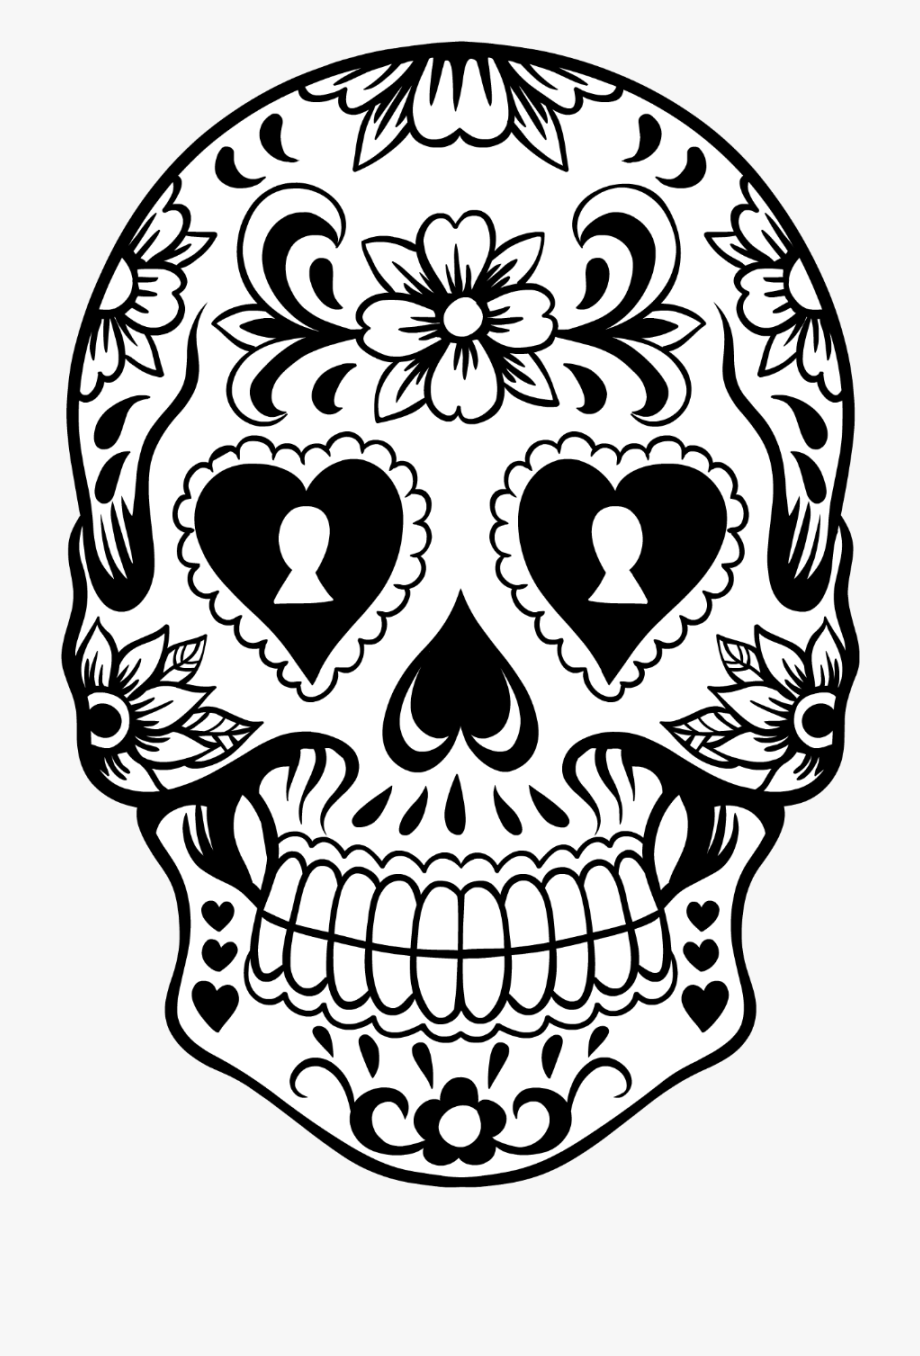 Pile of skulls black and white clipart vector library library Skull Clipart Lace - Sugar Skull Clipart Black And White ... vector library library